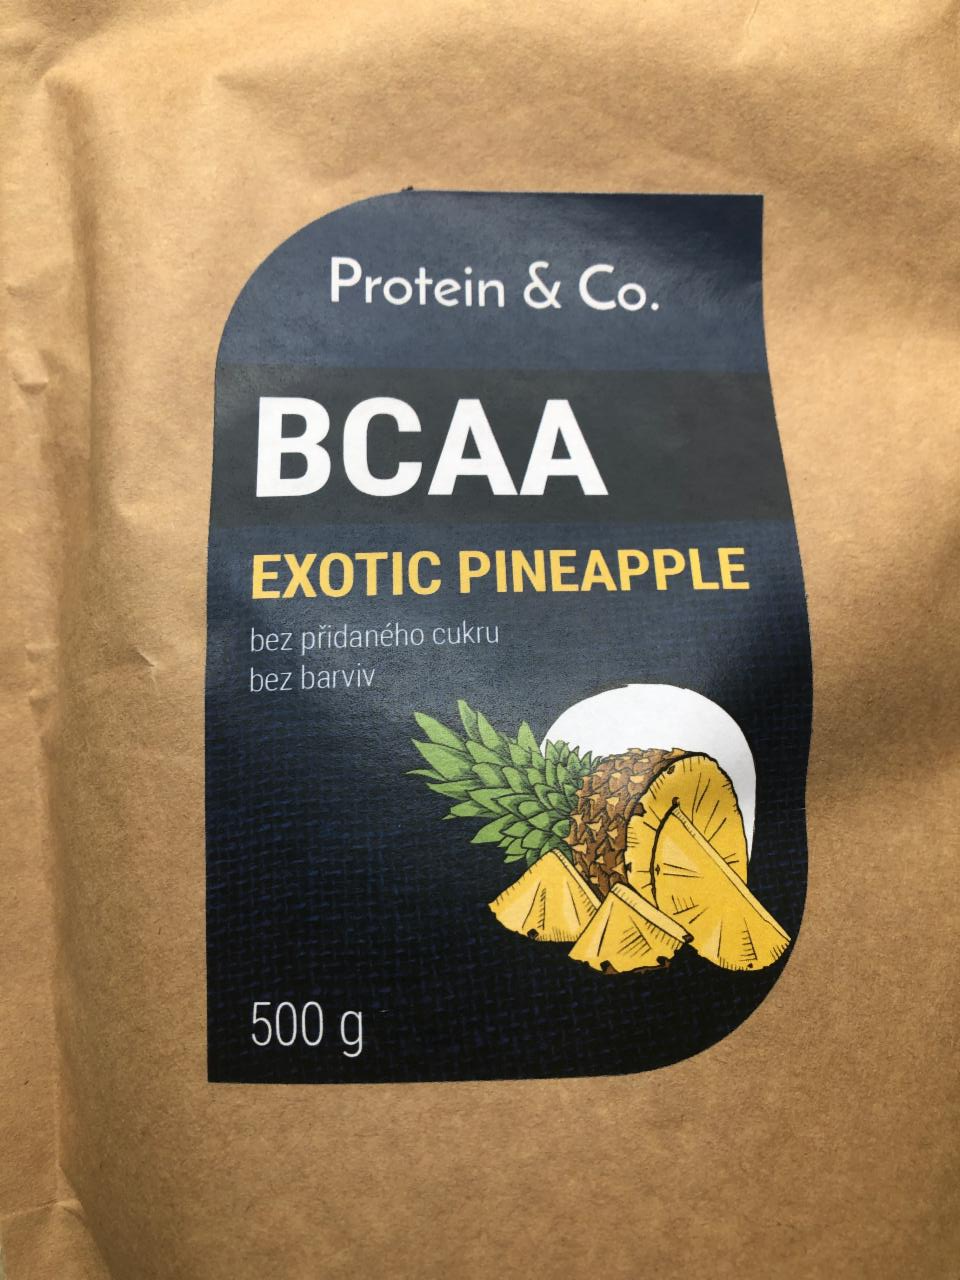 Fotografie - BCAA exotic pineapple Protein & Co.